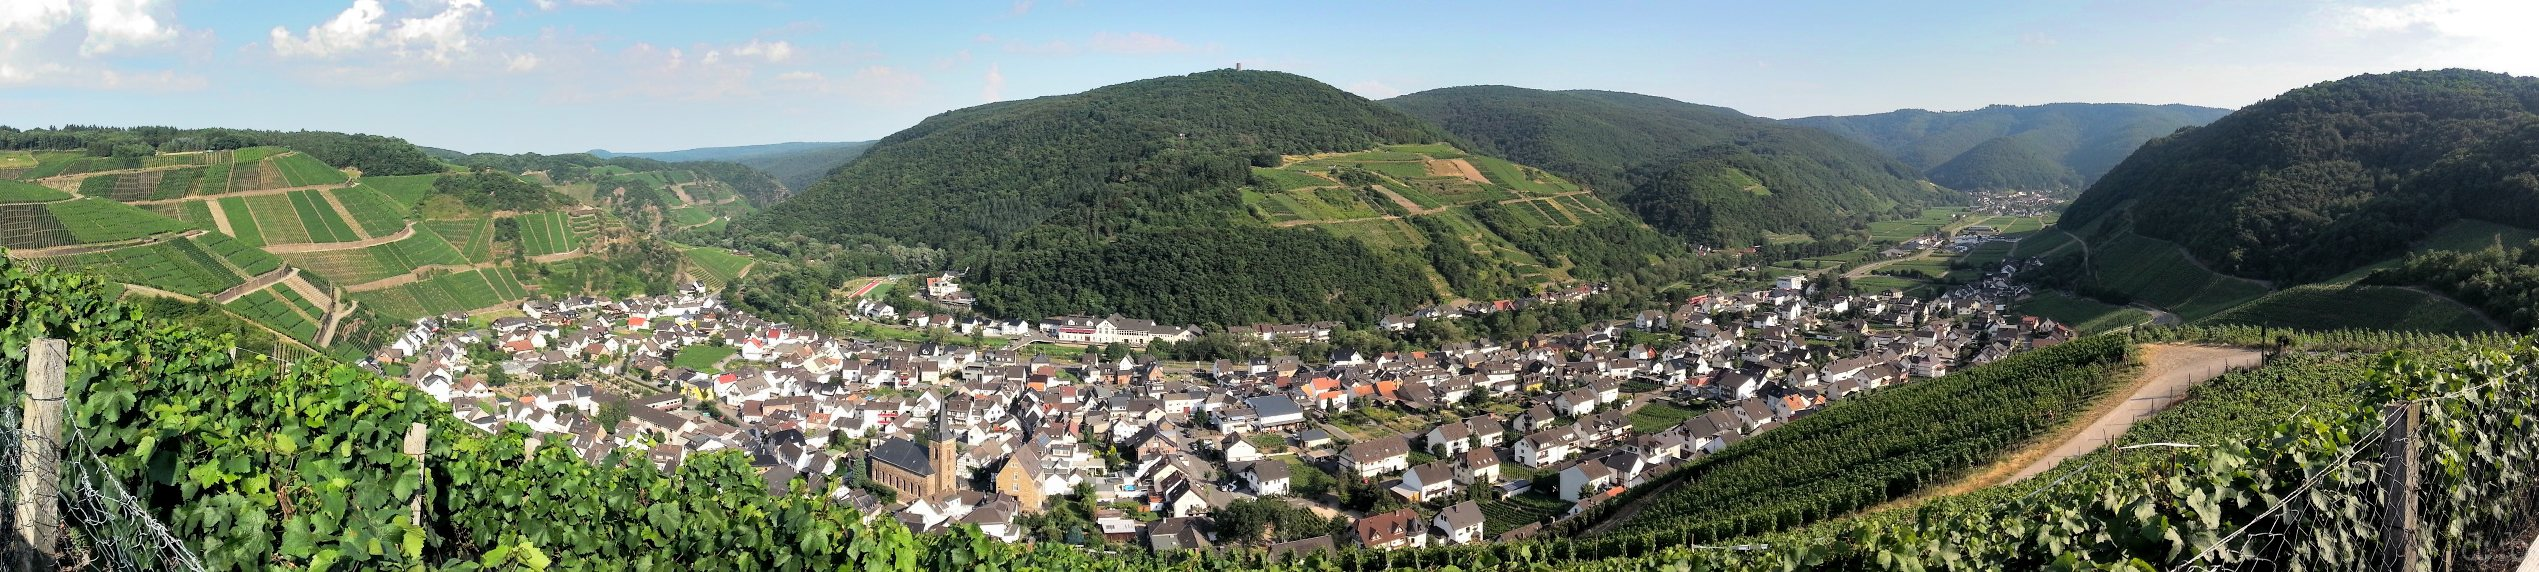 Panoramic view on Dernau, a wine village in the Ahr valley in the Eifel mountains.